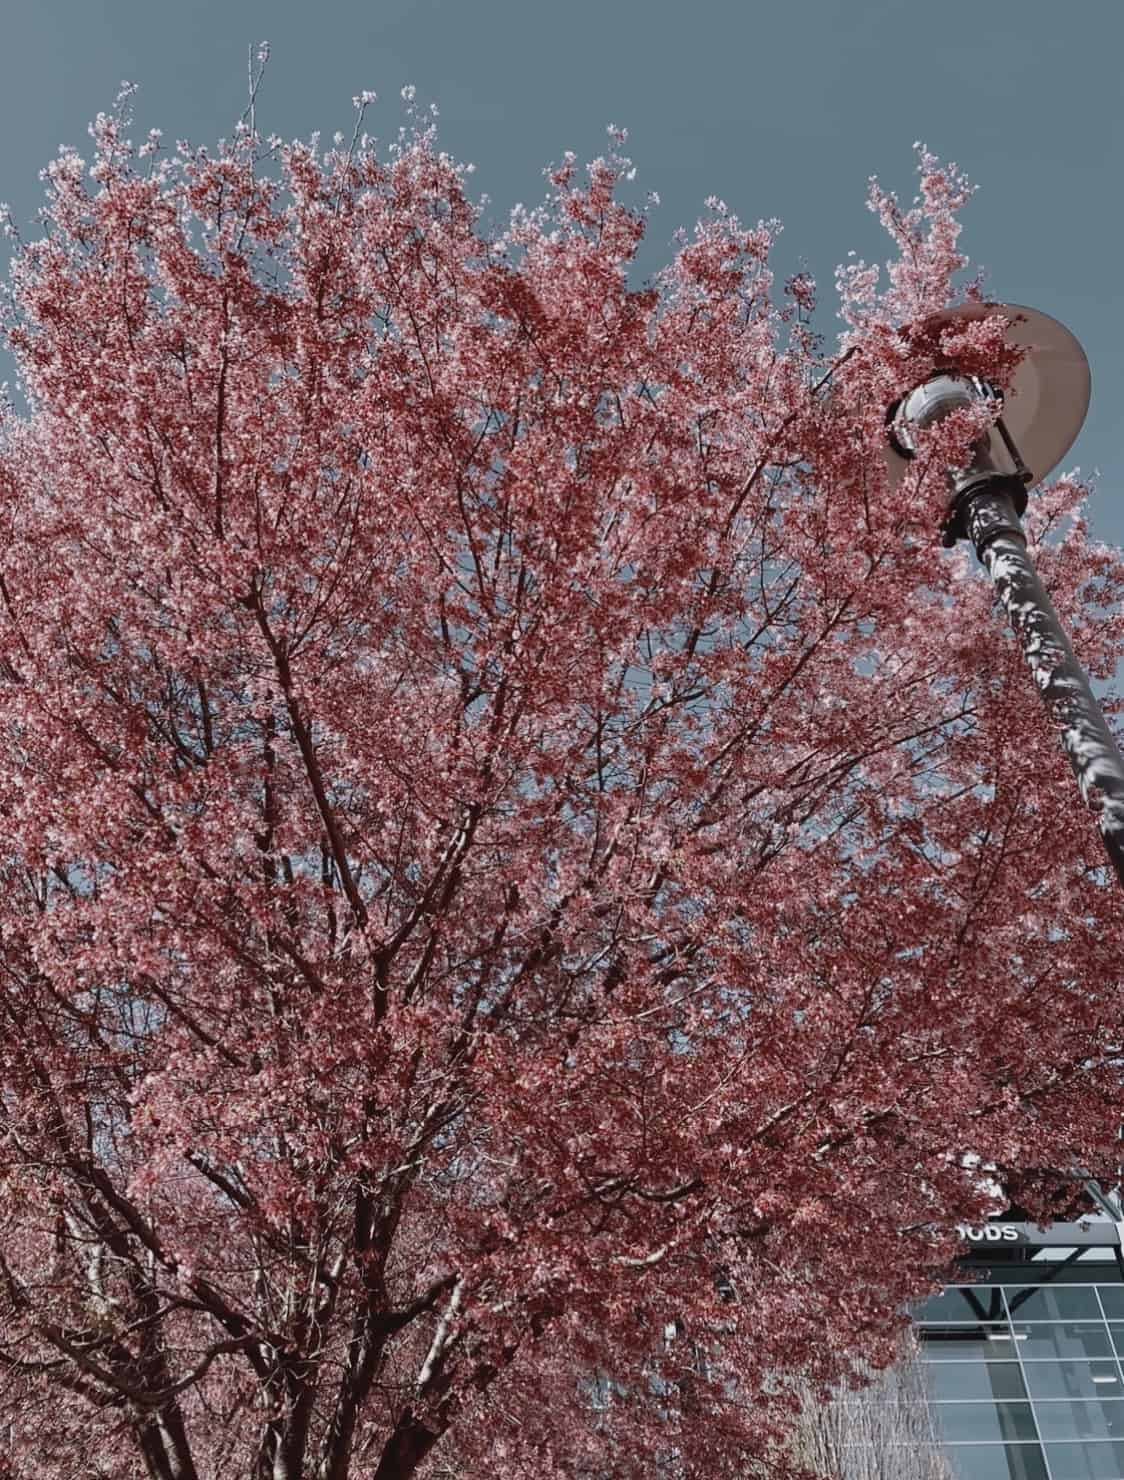 cherry blossom tree with a lamp against a blue sky